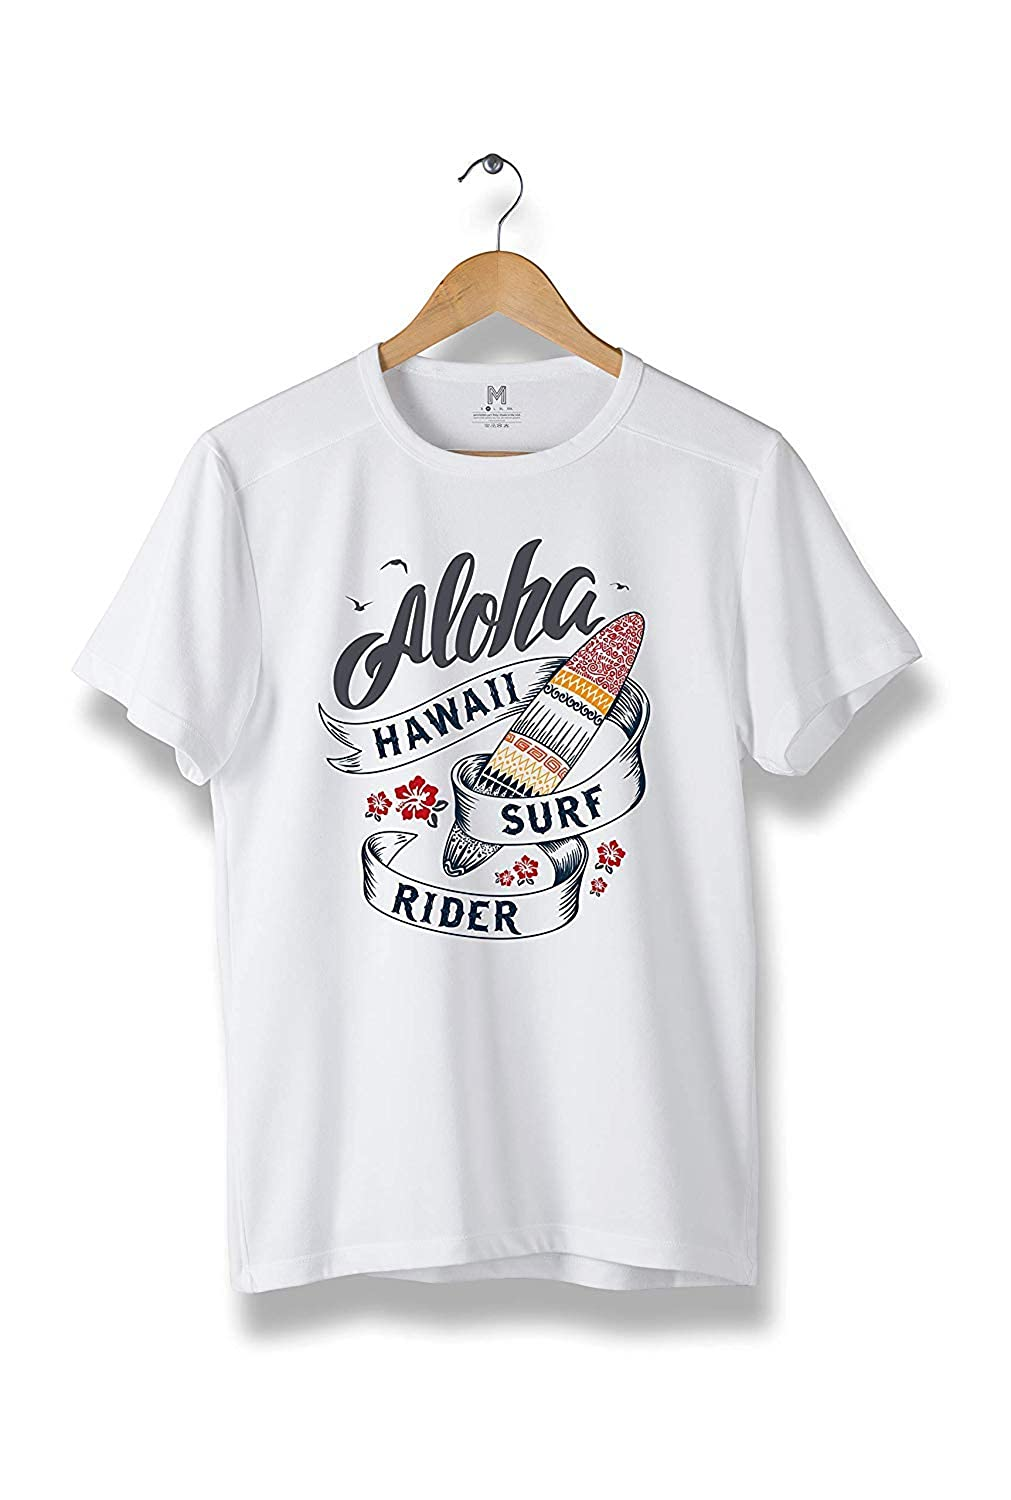 Aloha Hawaii Surf Rider T-Shirt Modern Cool Tees for Men R85